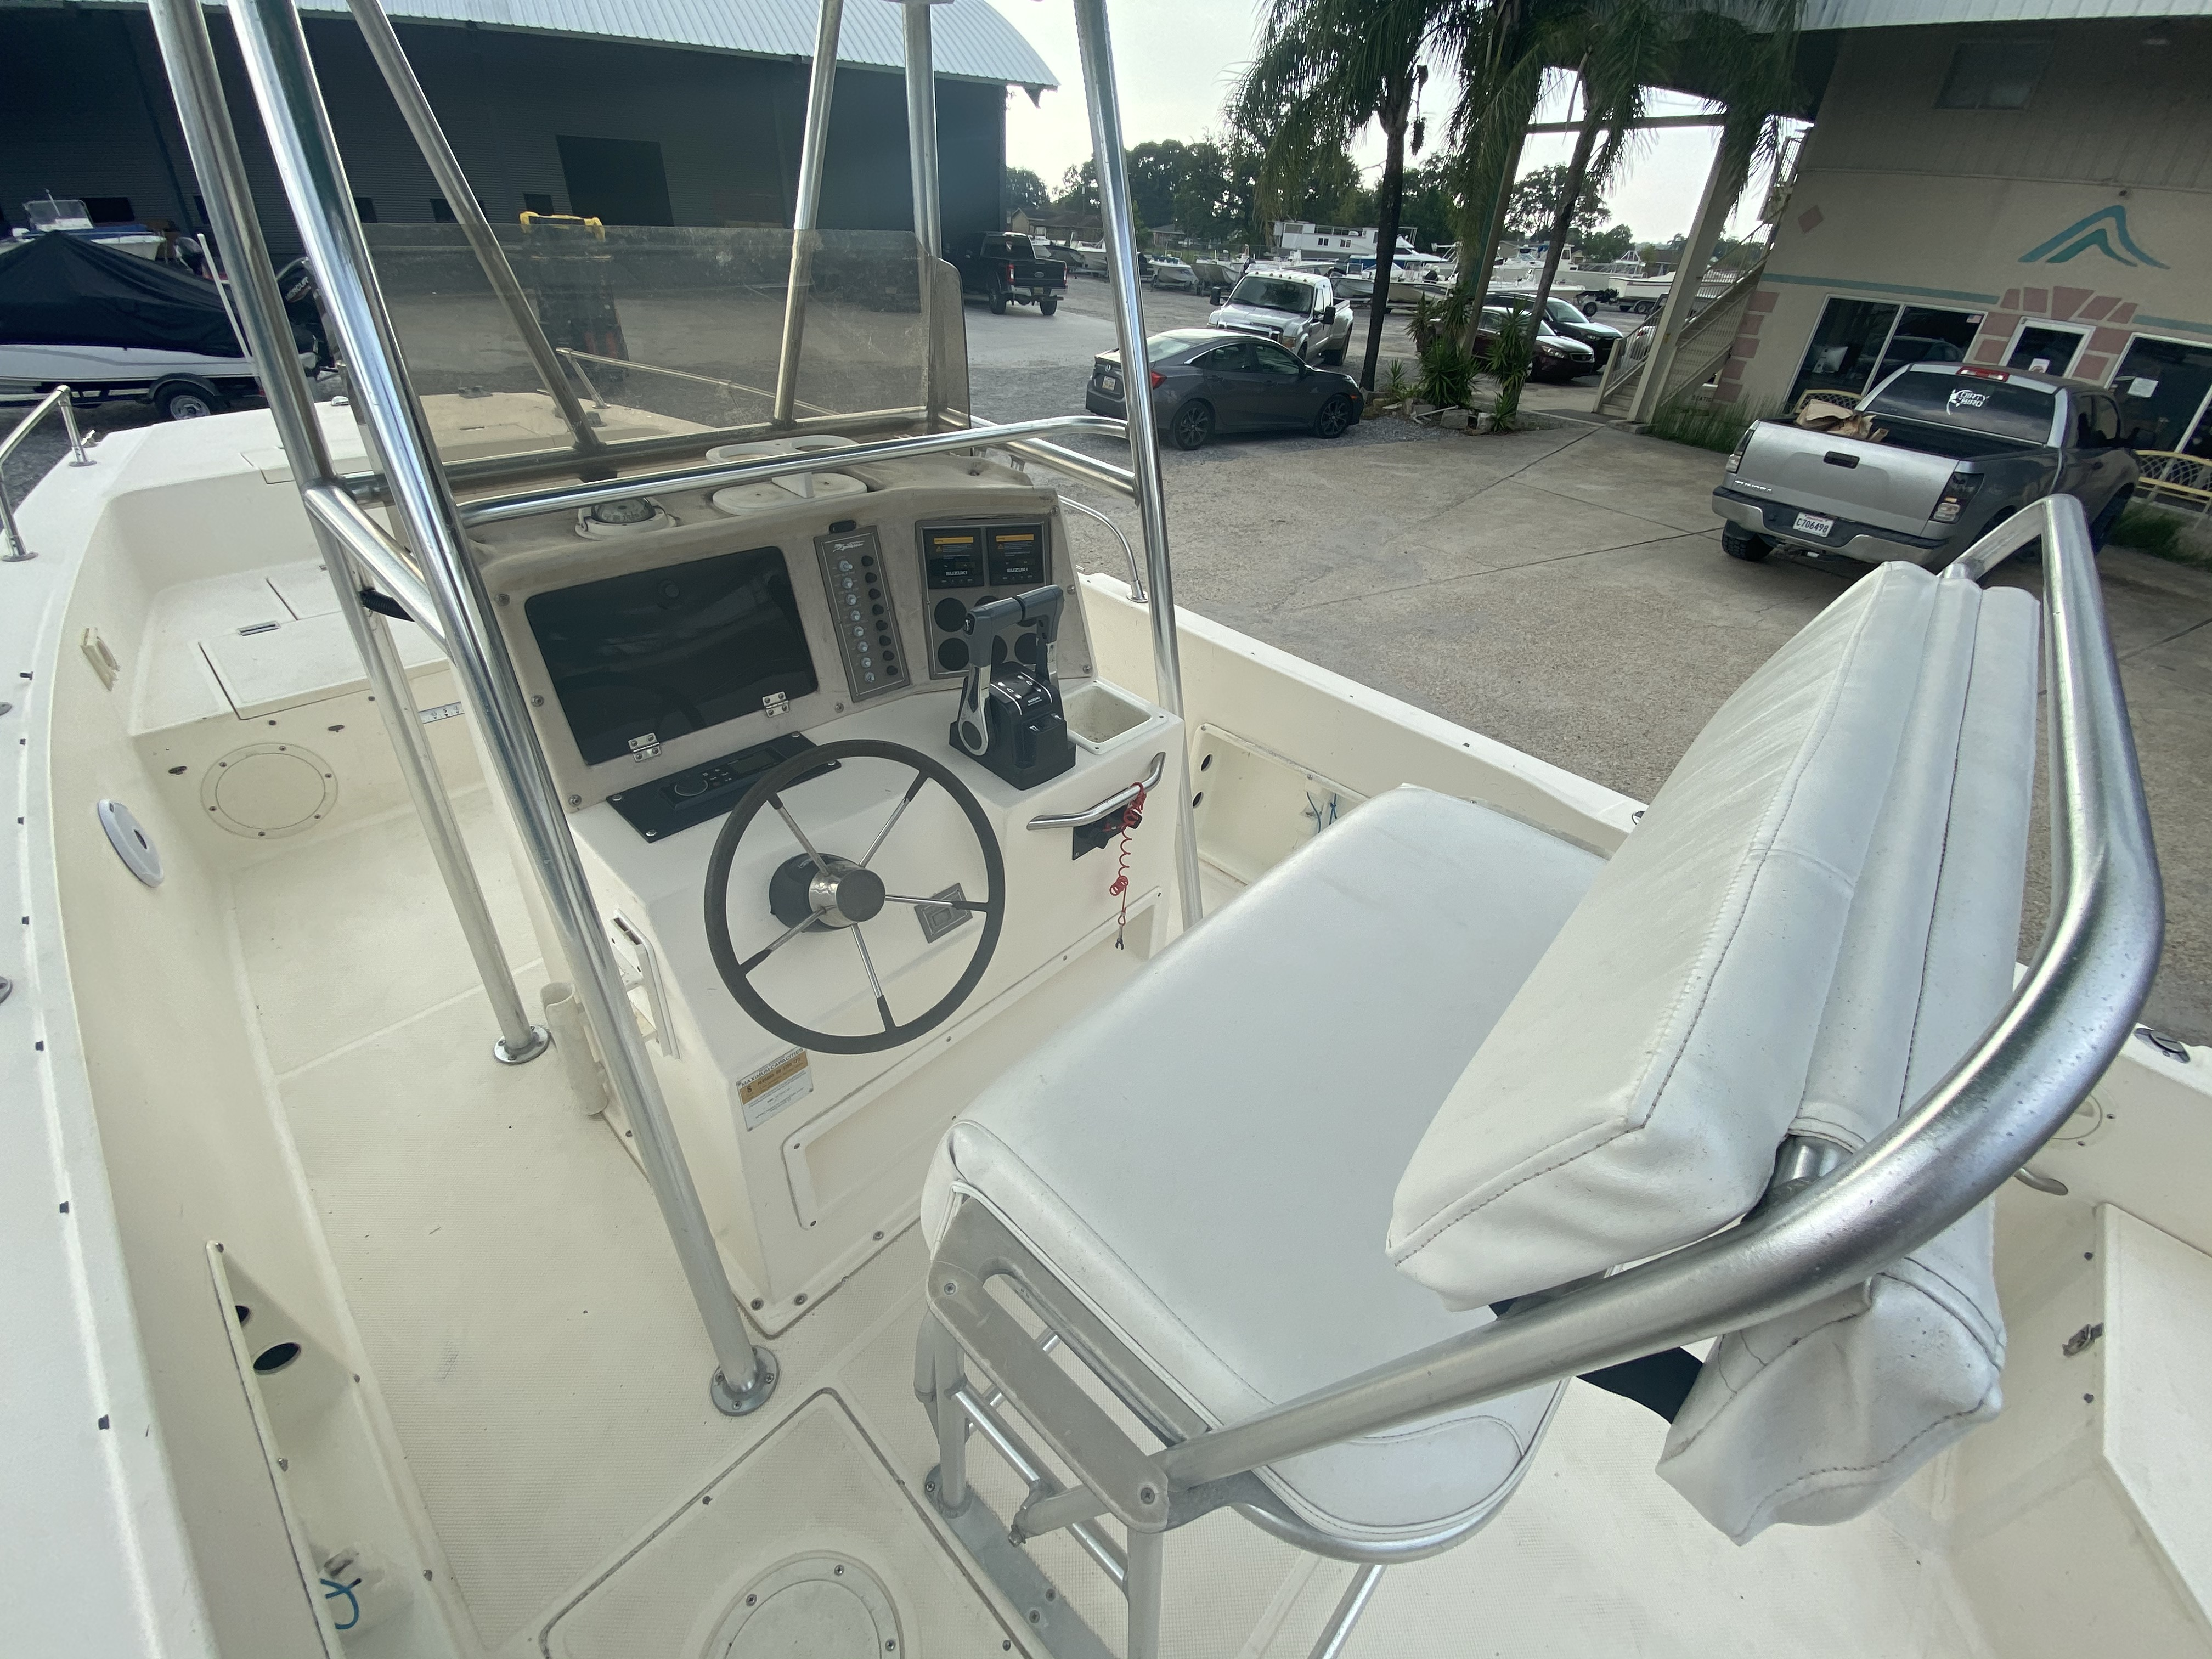 1996 Sea Cat boat for sale, model of the boat is 215 SL1 & Image # 18 of 25